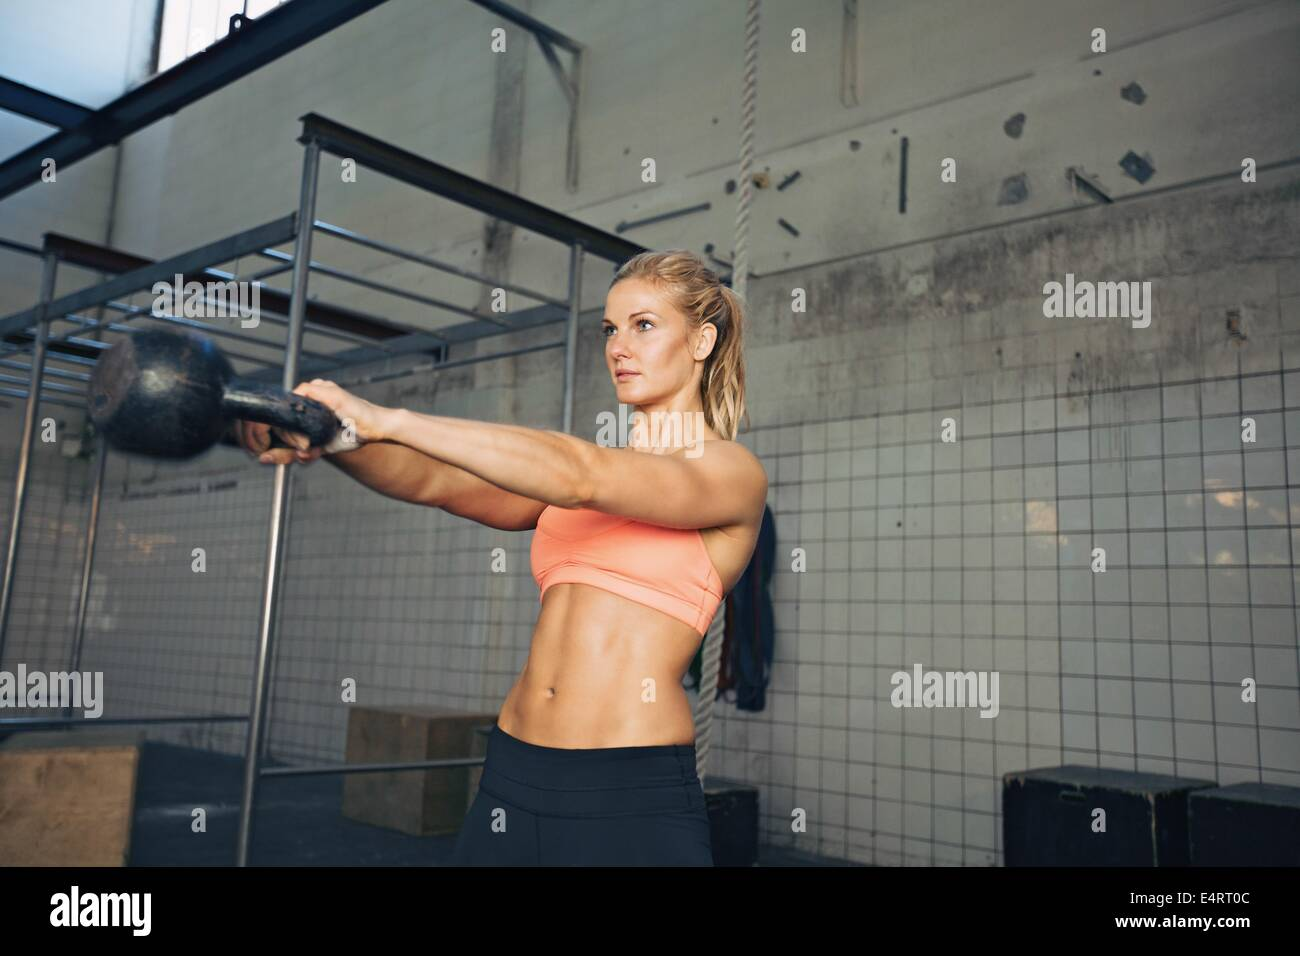 Fitness woman swinging kettle bell at gym. Young caucasian woman doing swing exercise with a kettlebell as a routine - Stock Image